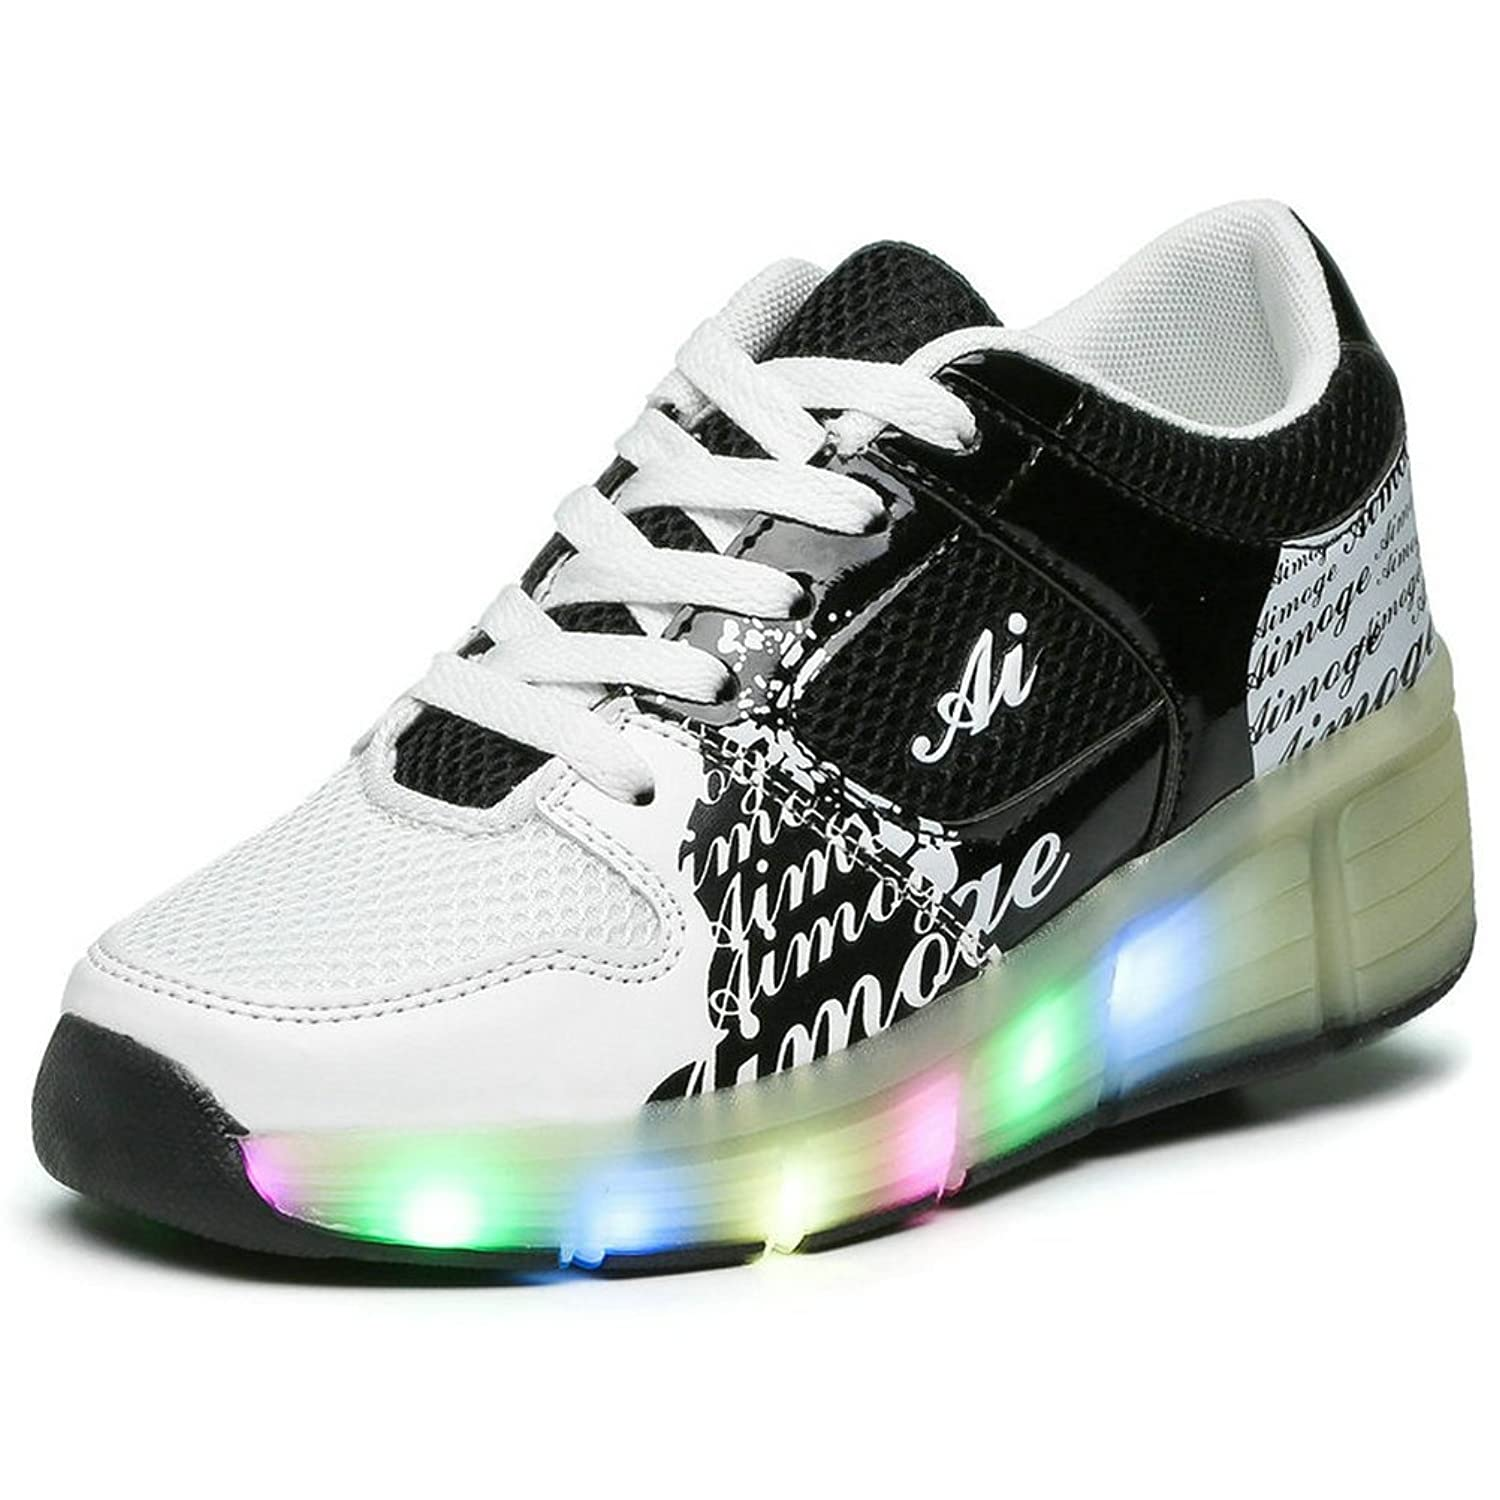 Pop out roller skate shoes - Boys Girl S Adult Led Light Roller Skate Shoes With One Wheel Flashing Sneakers Amazon Co Uk Shoes Bags